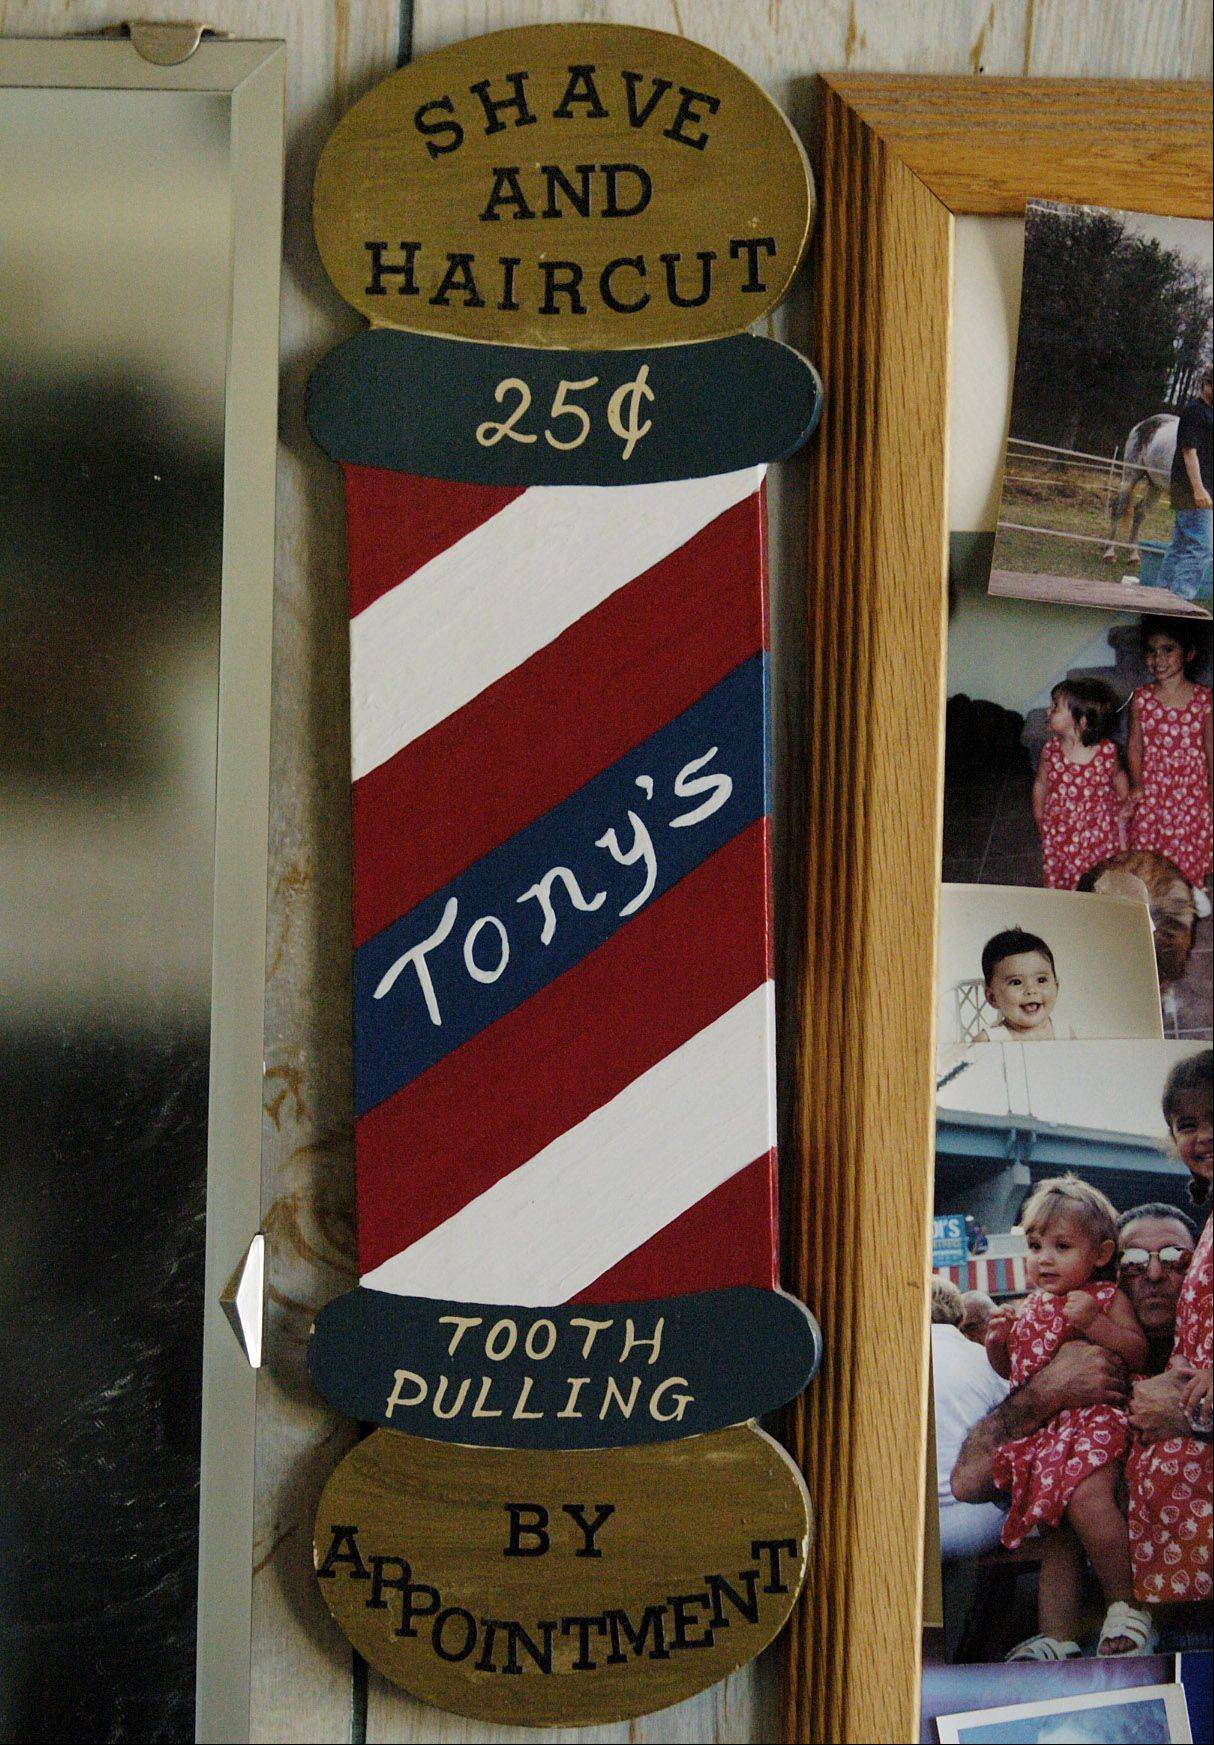 One of the many mementos hanging on the wall of Tony's Barber Shop.